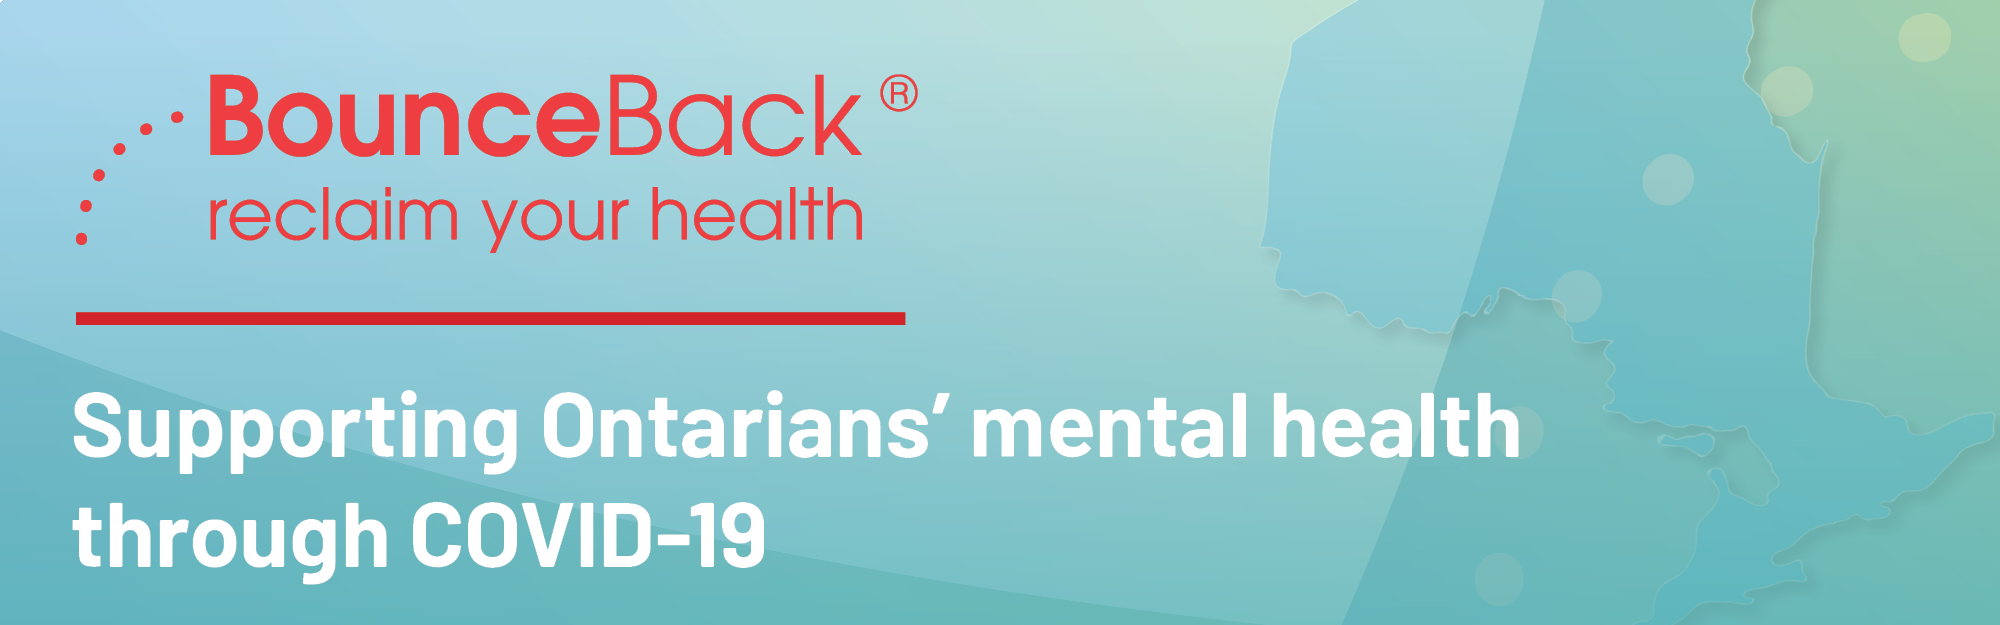 BounceBack Supporting Ontarians' mental health through COVID-19